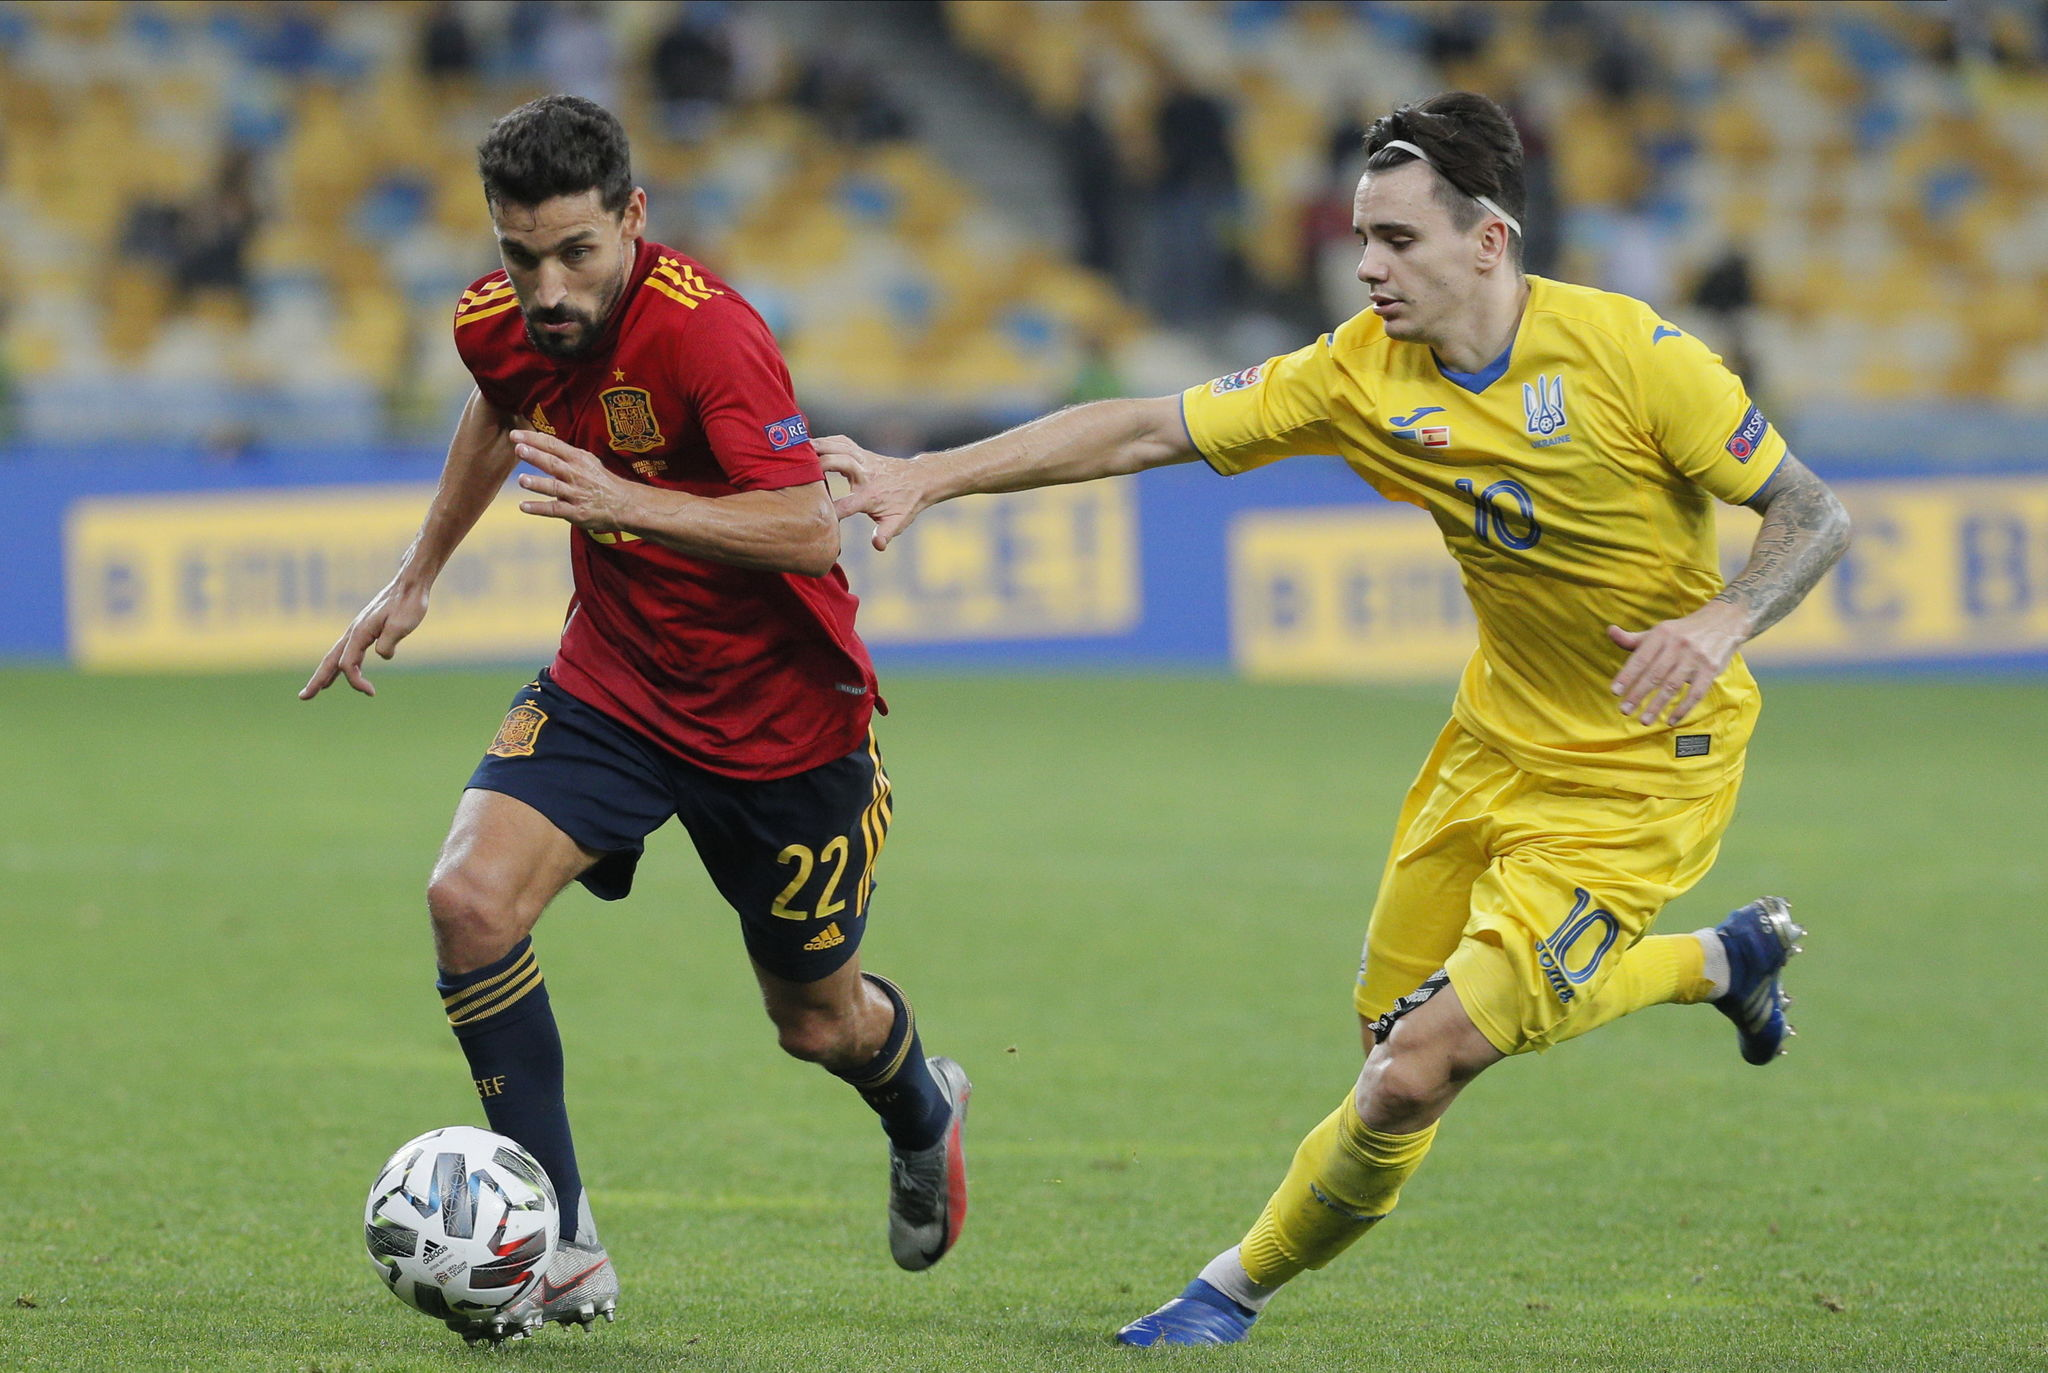 Kiev (Ukraine), 13/10/2020.- lt;HIT gt;Jesus lt;/HIT gt; lt;HIT gt;Navas lt;/HIT gt; (L) of Spain and Mykola Shaparenko (R) of Ukraine in action during the UEFA Nations League group stage, league A, group 4 soccer match between Ukraine and Spain in Kiev, Ukraine, 13 October 2020. (España, Ucrania) EFE/EPA/SERGEY DOLZHENKO